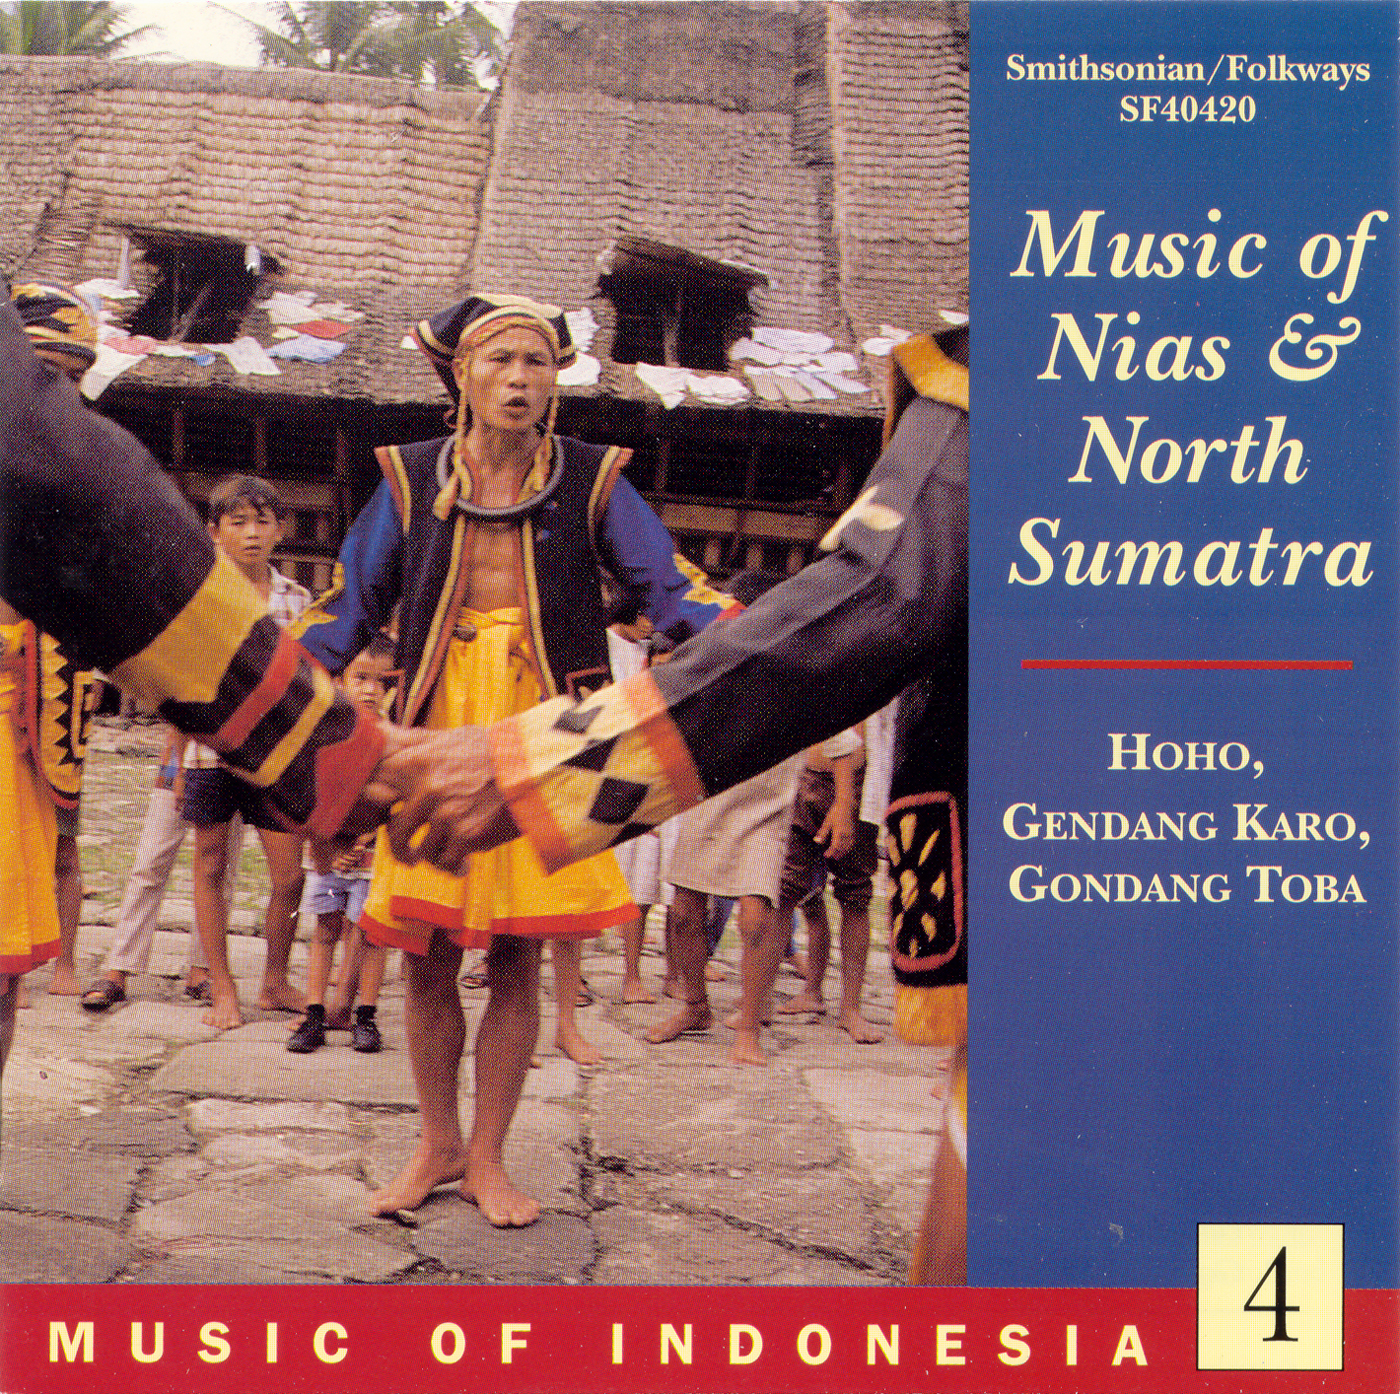 Music of Indonesia, Vol  4: Music of Nias and North Sumatra